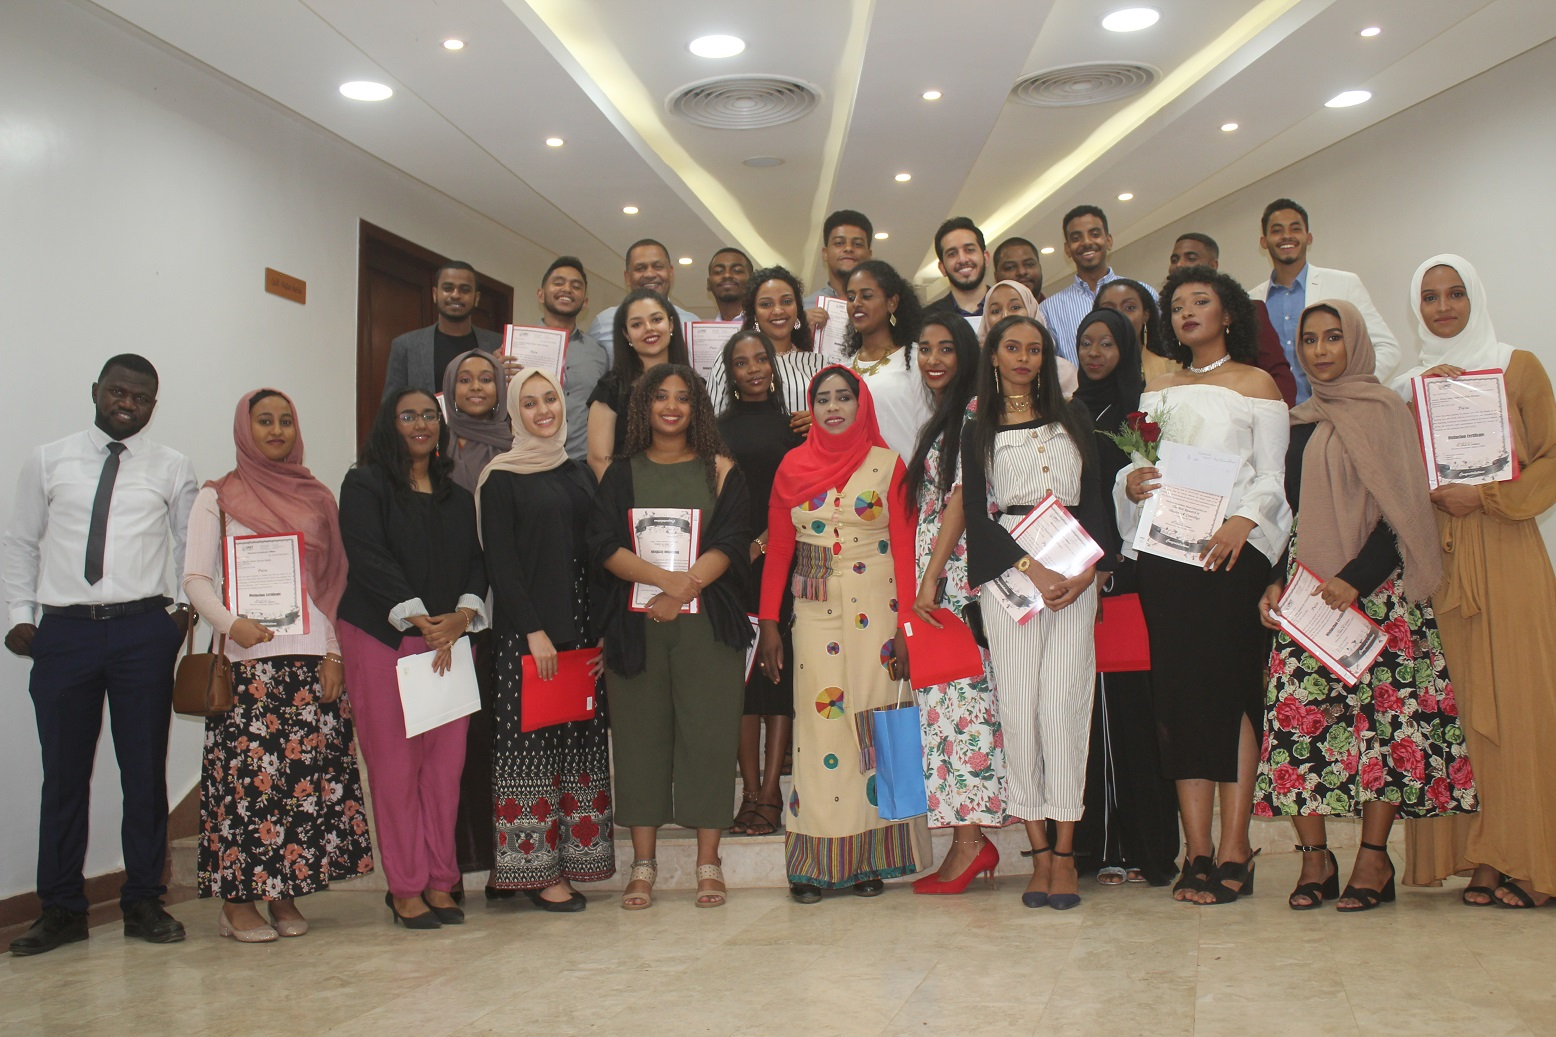 UMST Faculty of Medicine Batch 21 with Faculty Members